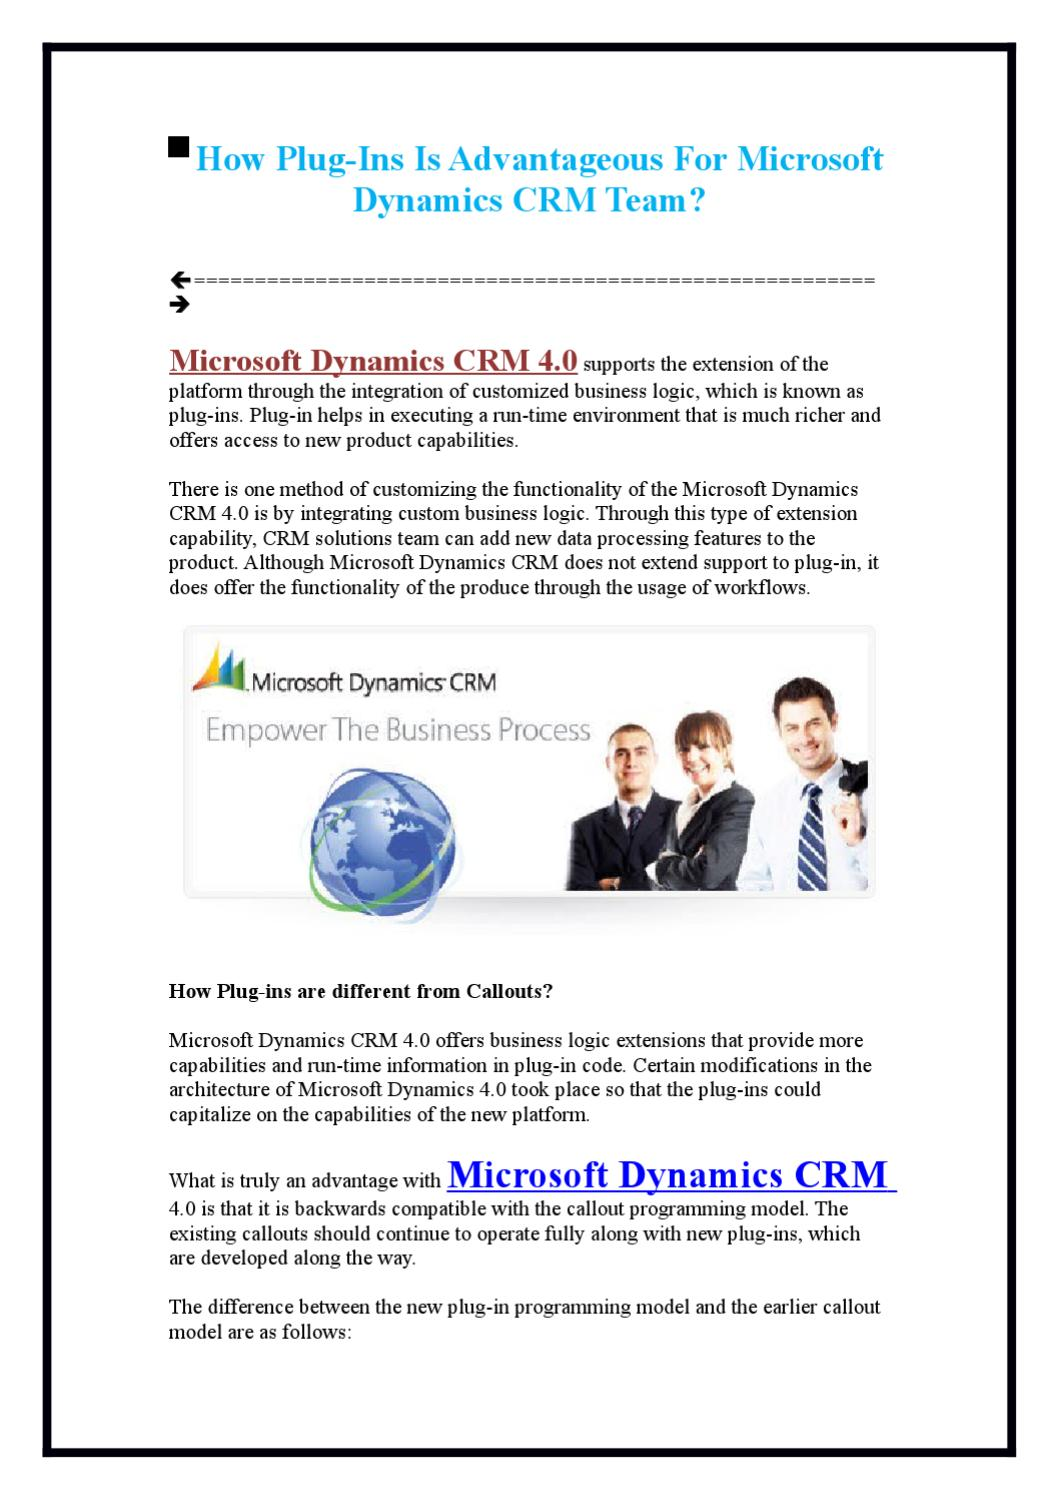 How Plug-Ins Is Advantageous For Microsoft Dynamics CRM Team? by